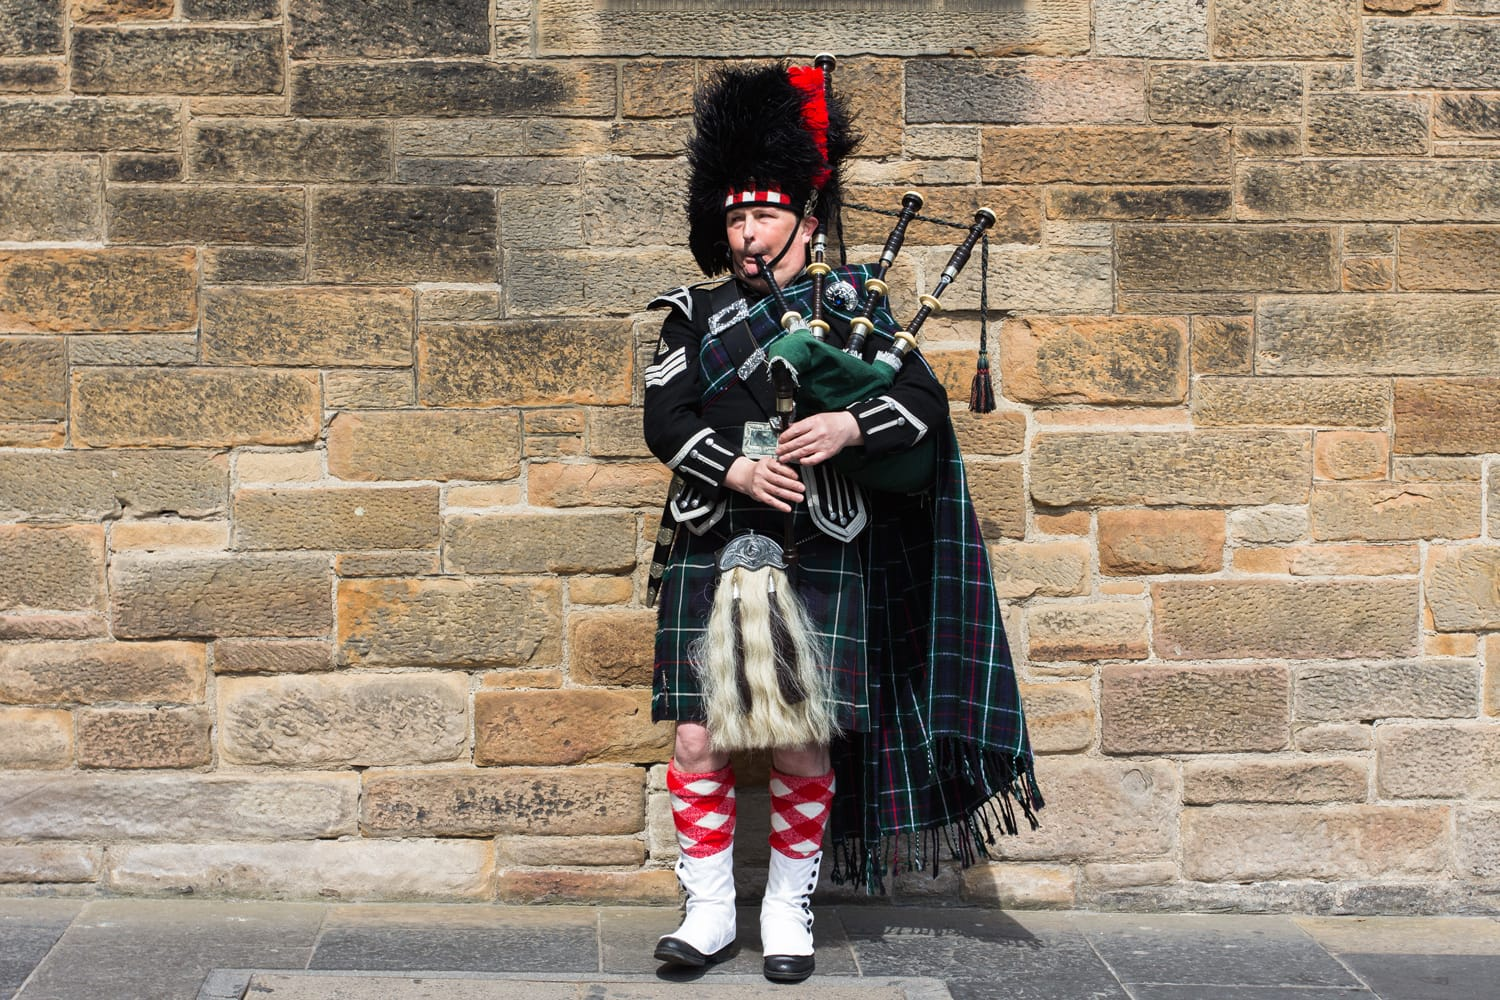 A bagpiper, a street musician wearing kilt and traditional scottish costume